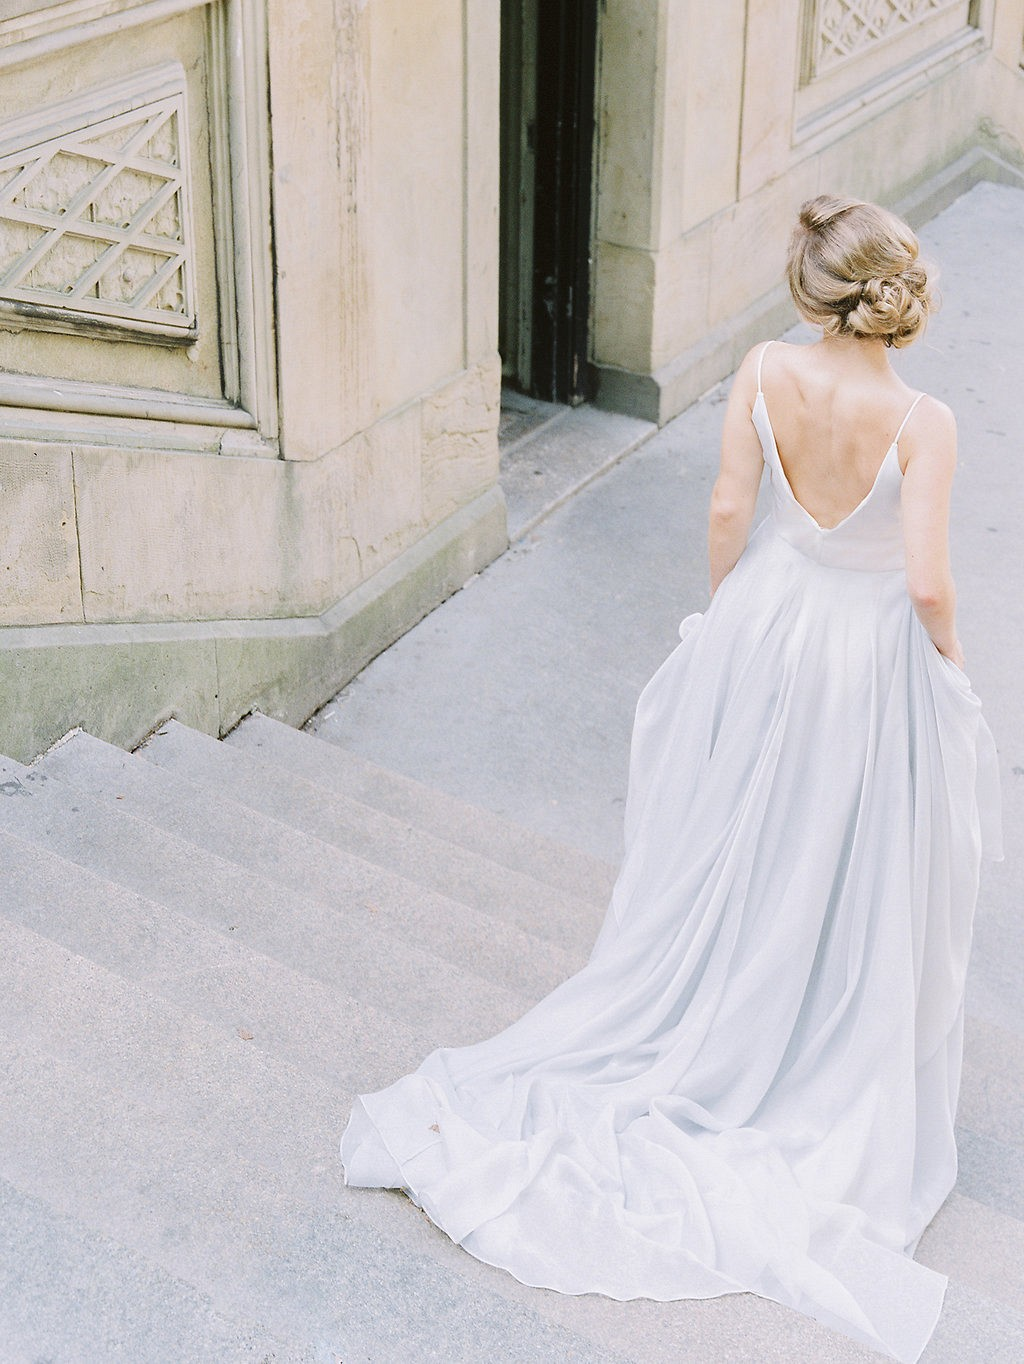 Central Park Elopement in a Pale Blue Wedding Gown by Amelia ...